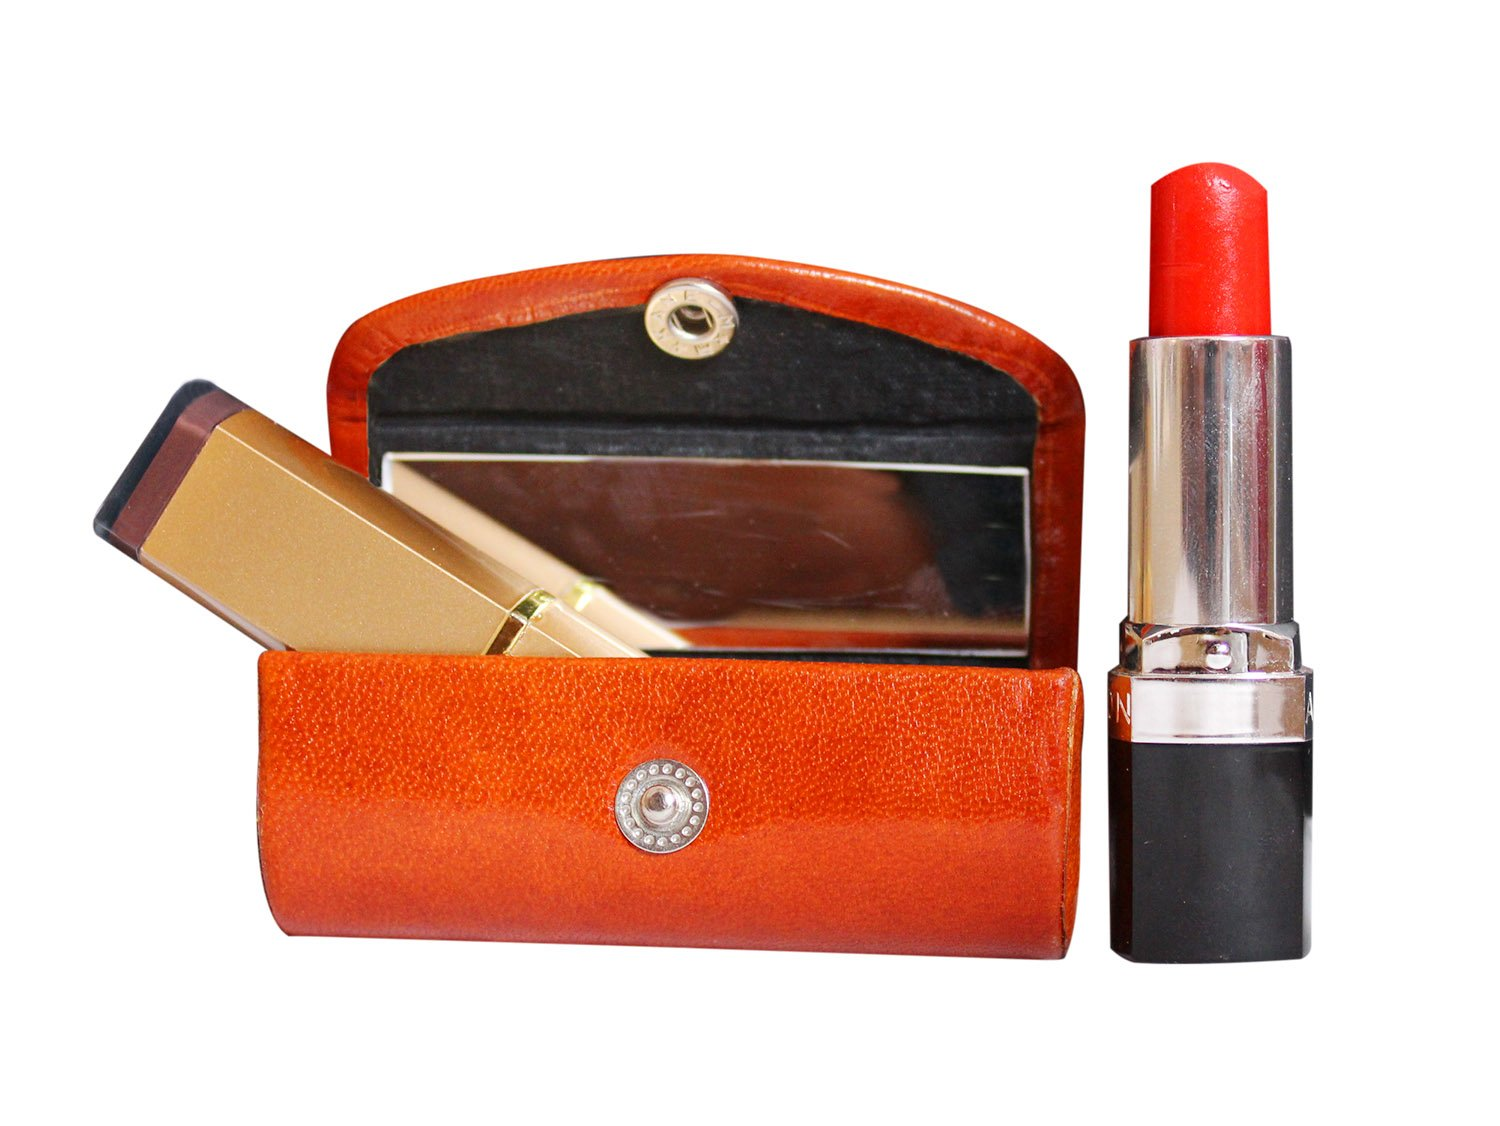 Leather Lipstick Case Holder - Organizer Bag for Purse- lipstick holder- Durable Soft Leather -Cosmetic Storage Kit With Mirror Brown The StoreKing